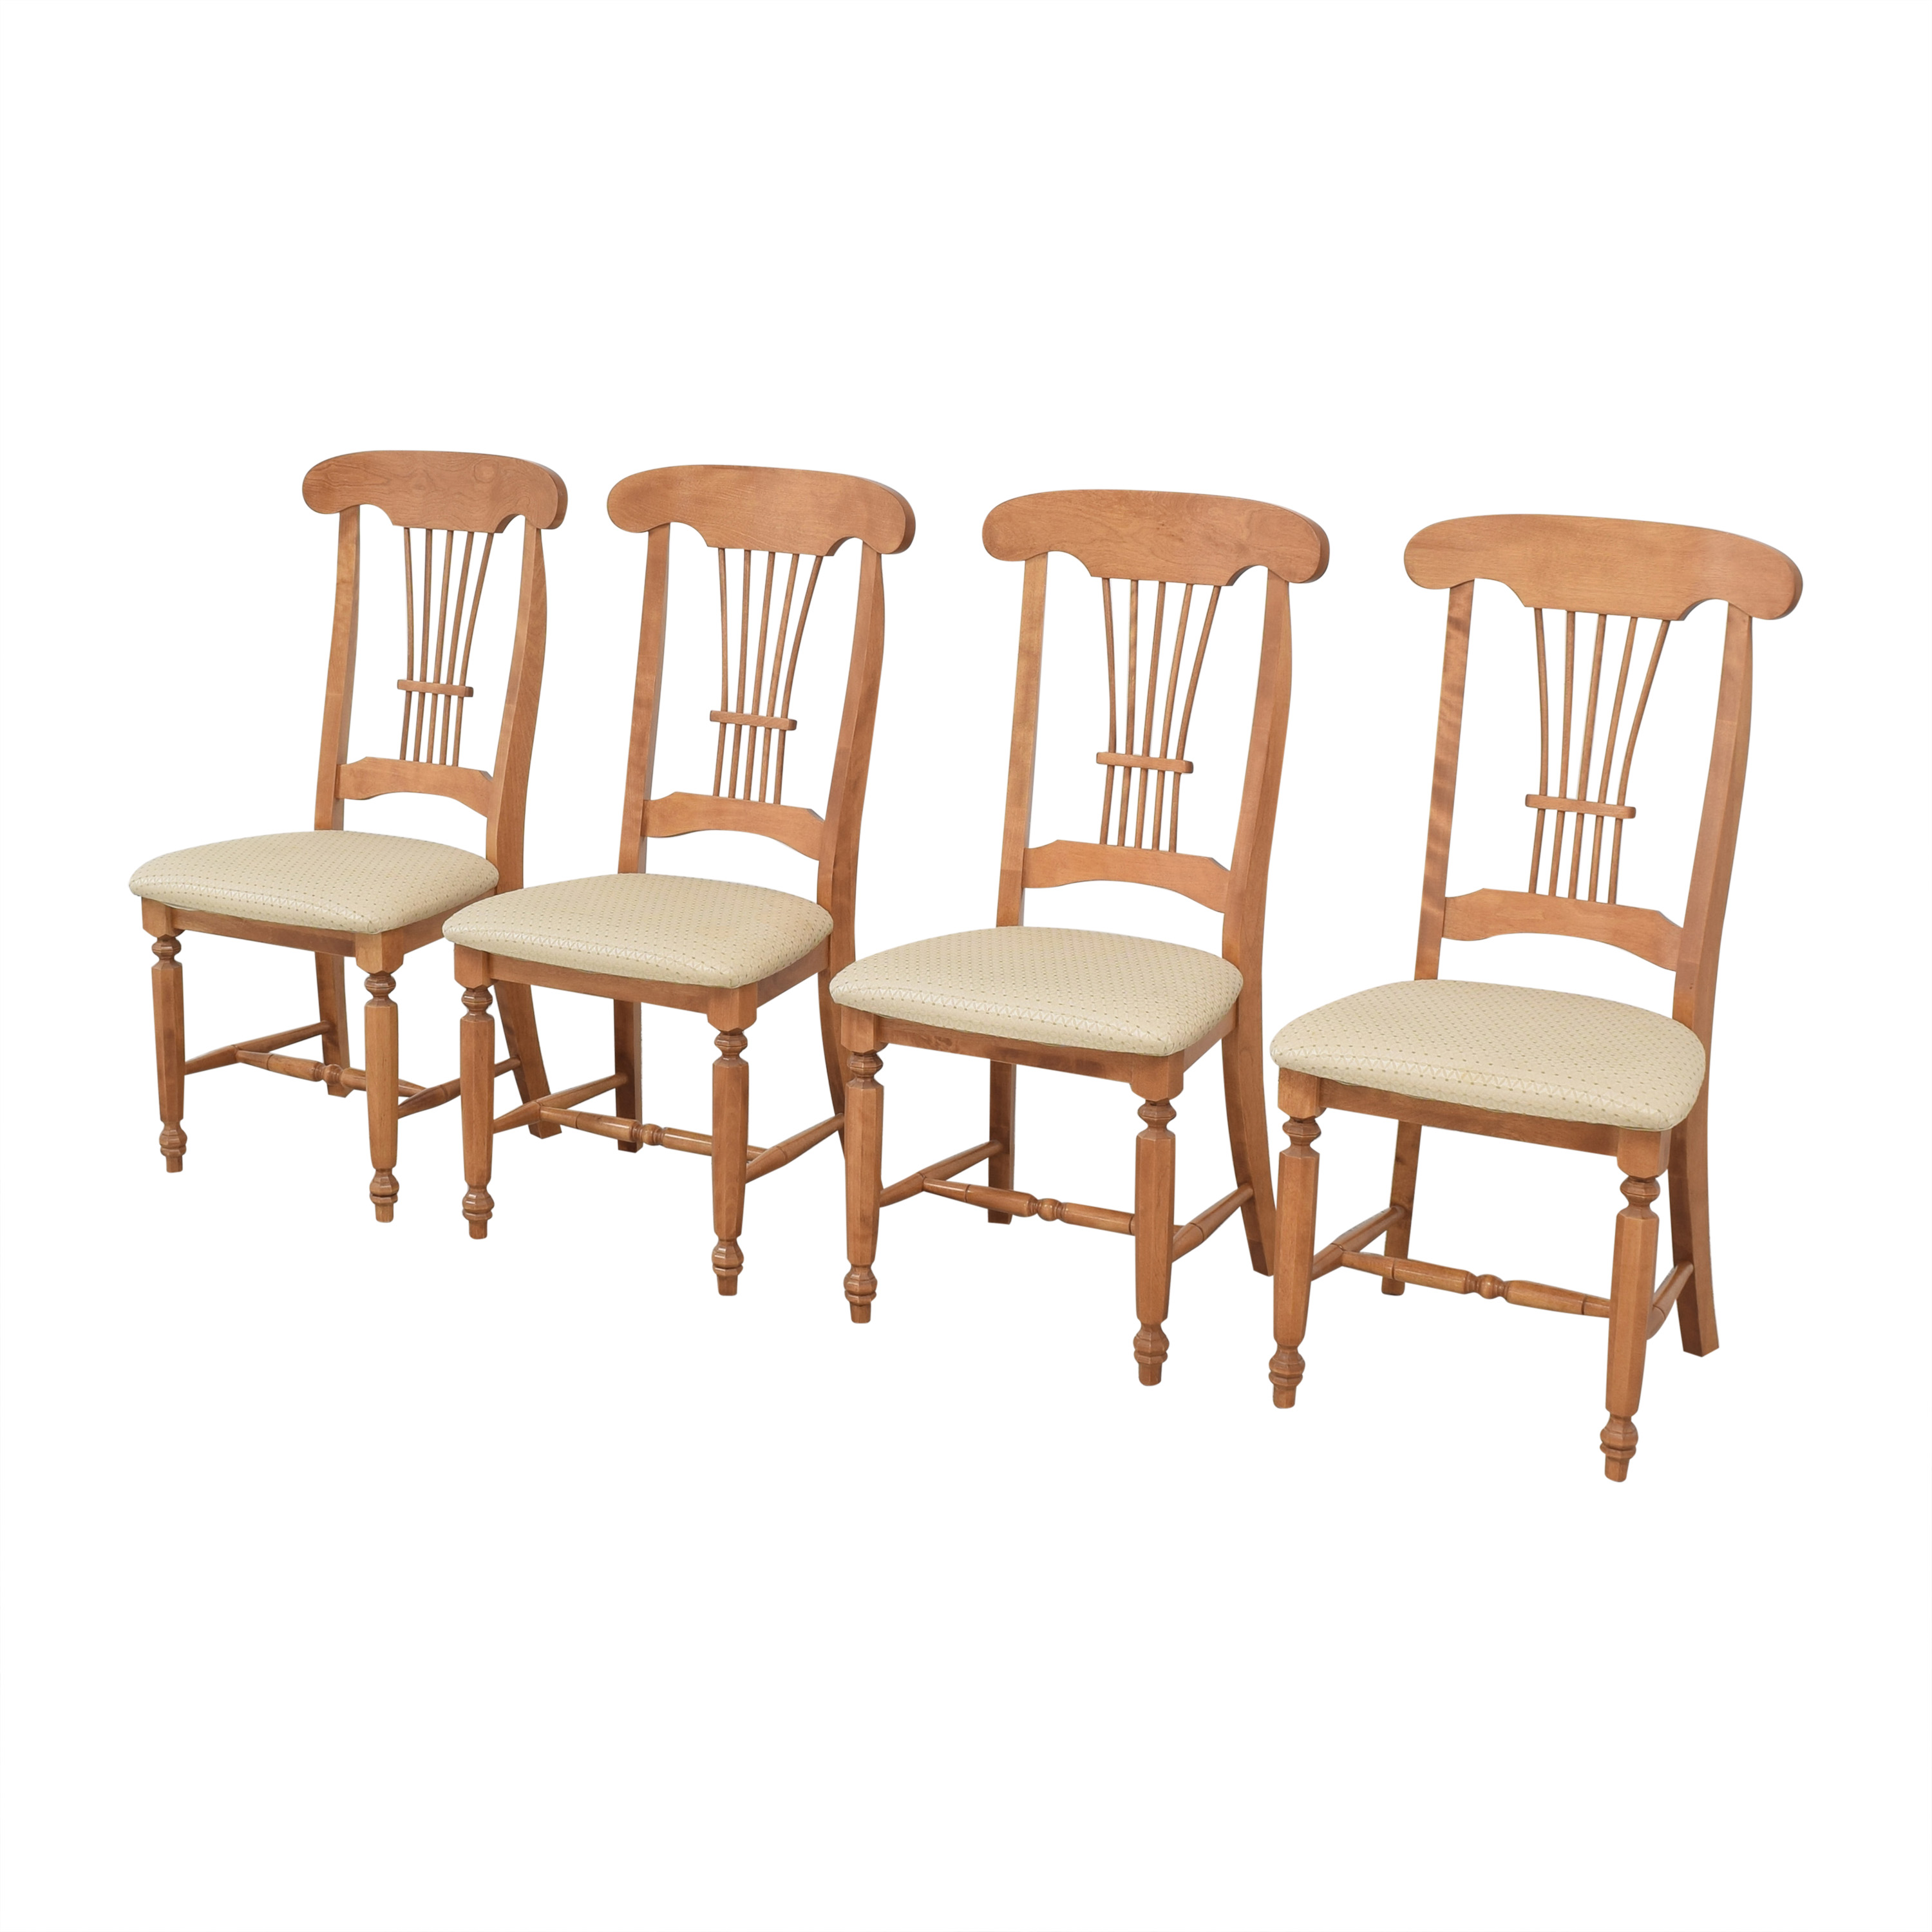 Canadel Canadel Upholstered Dining Chairs on sale